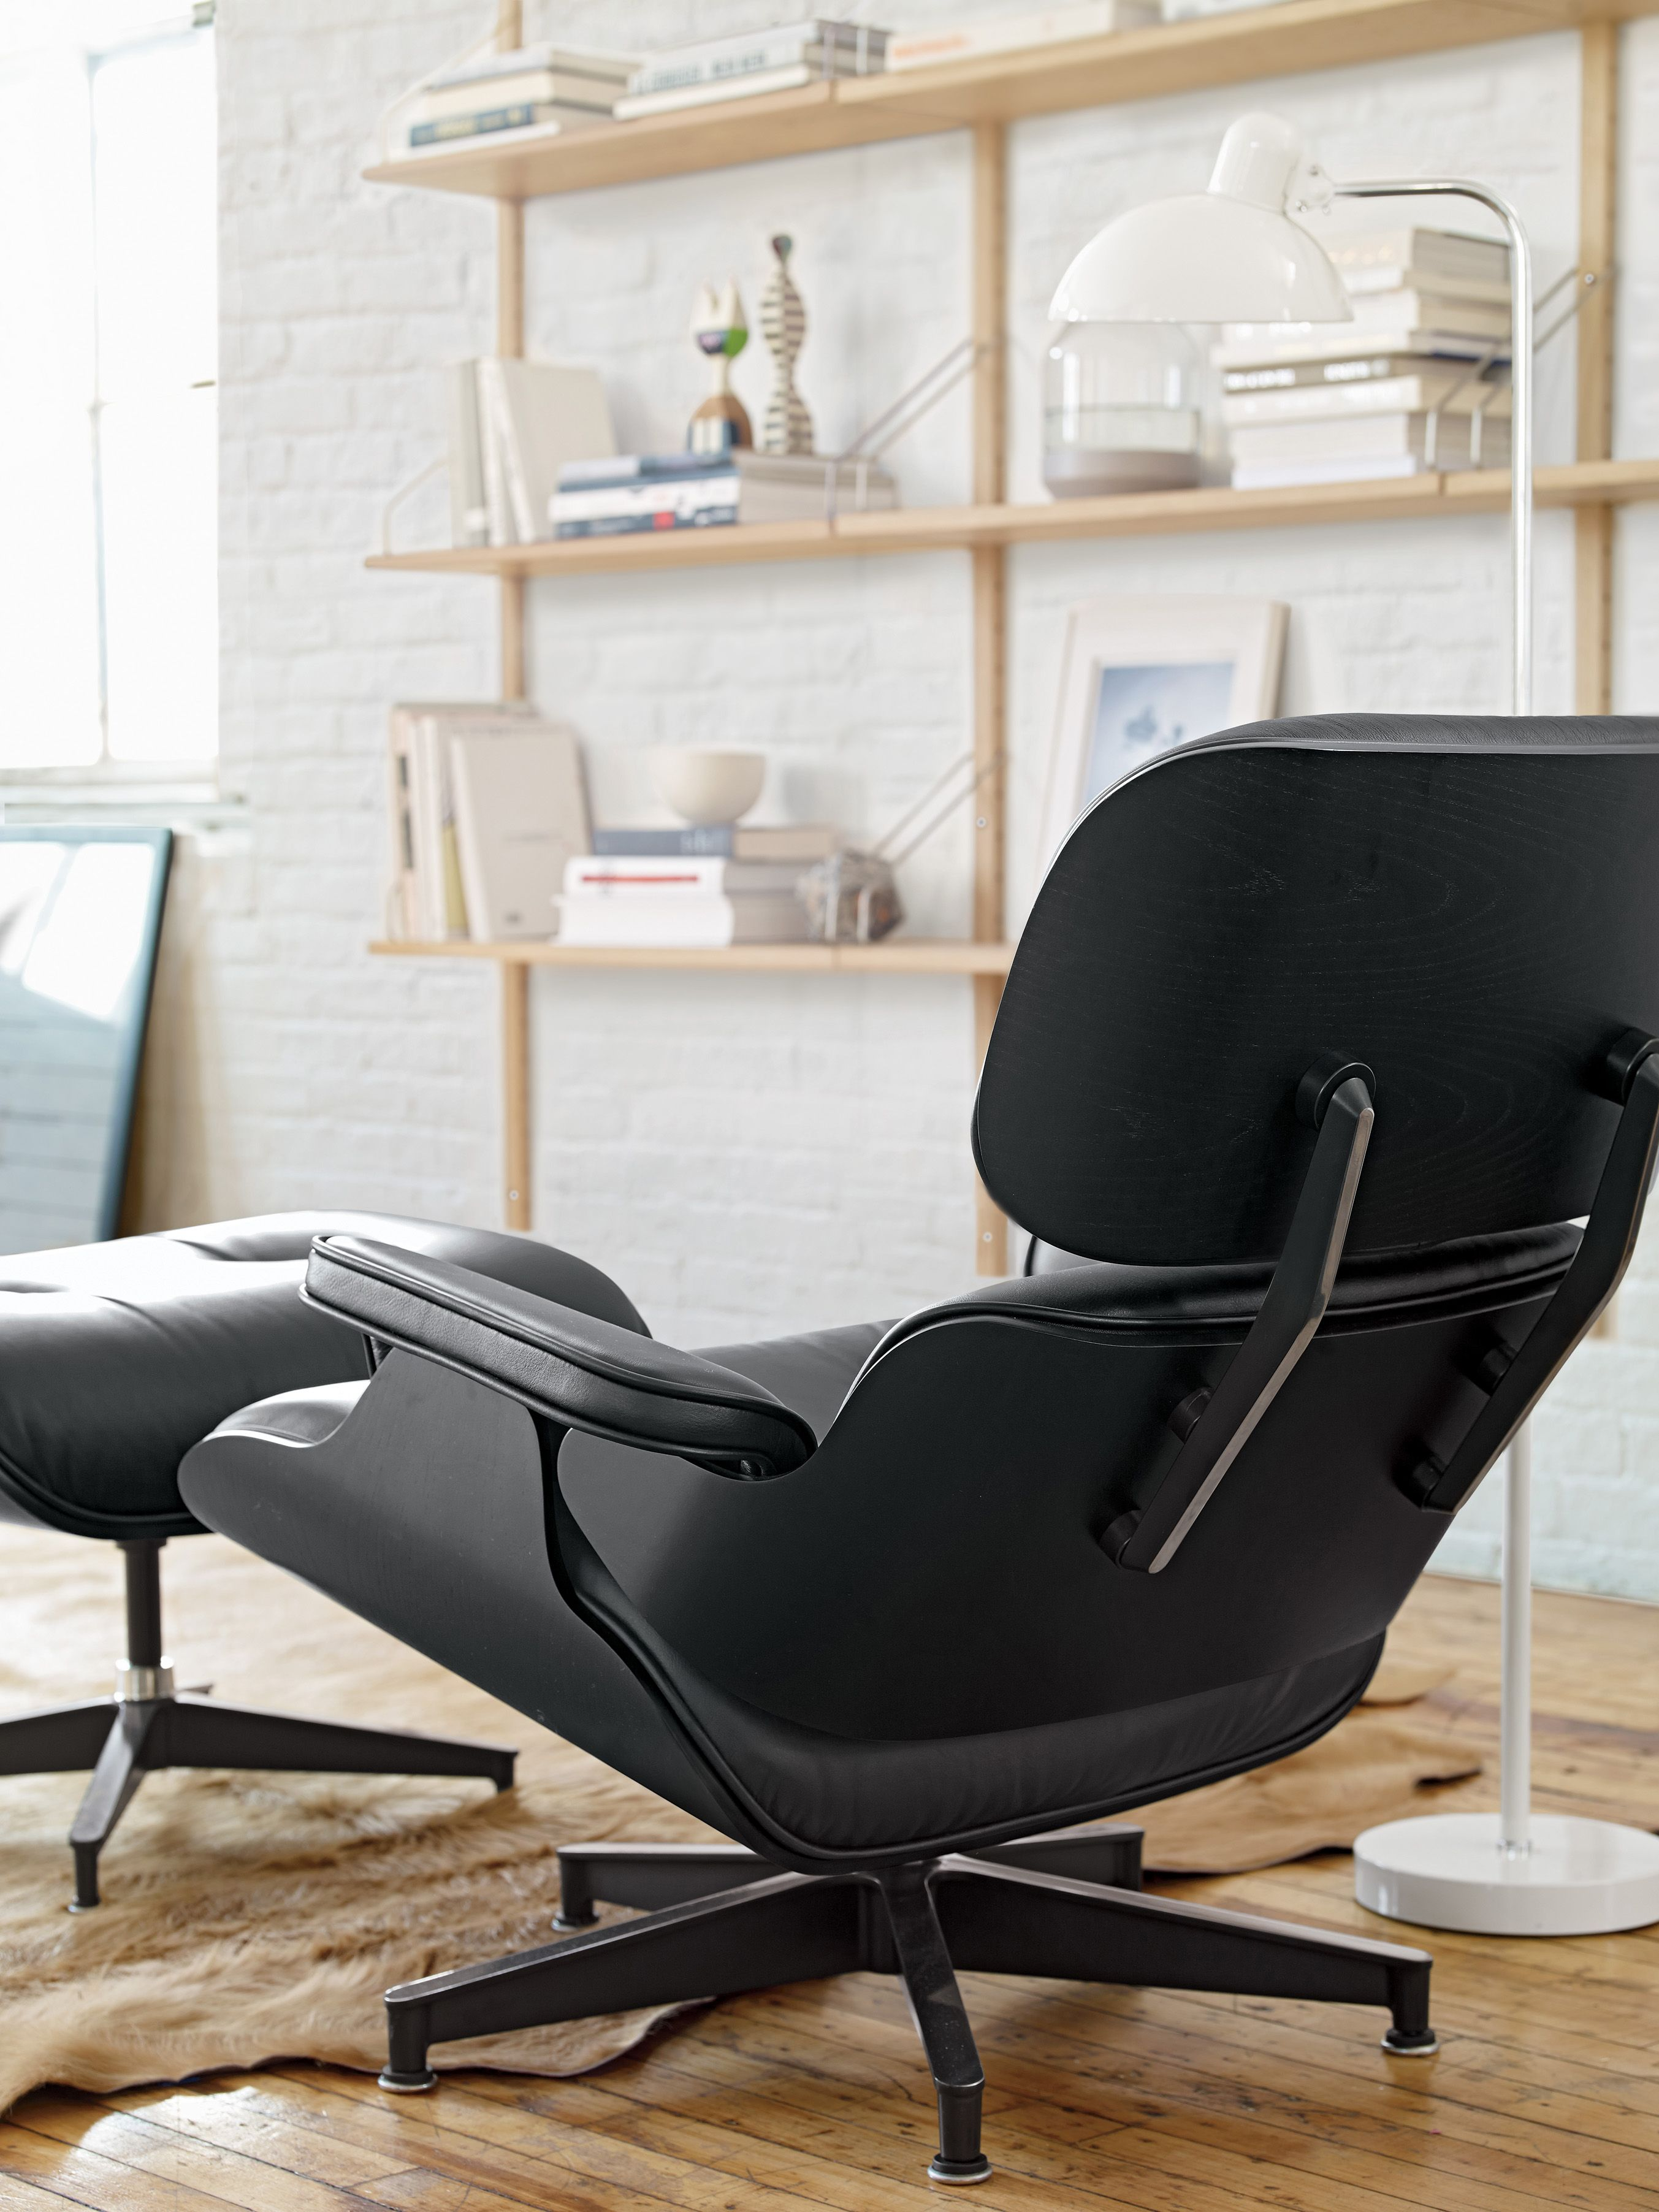 Lounge Sessel Eames Lounge Chair Chairs Pinterest Eames Interior Design And